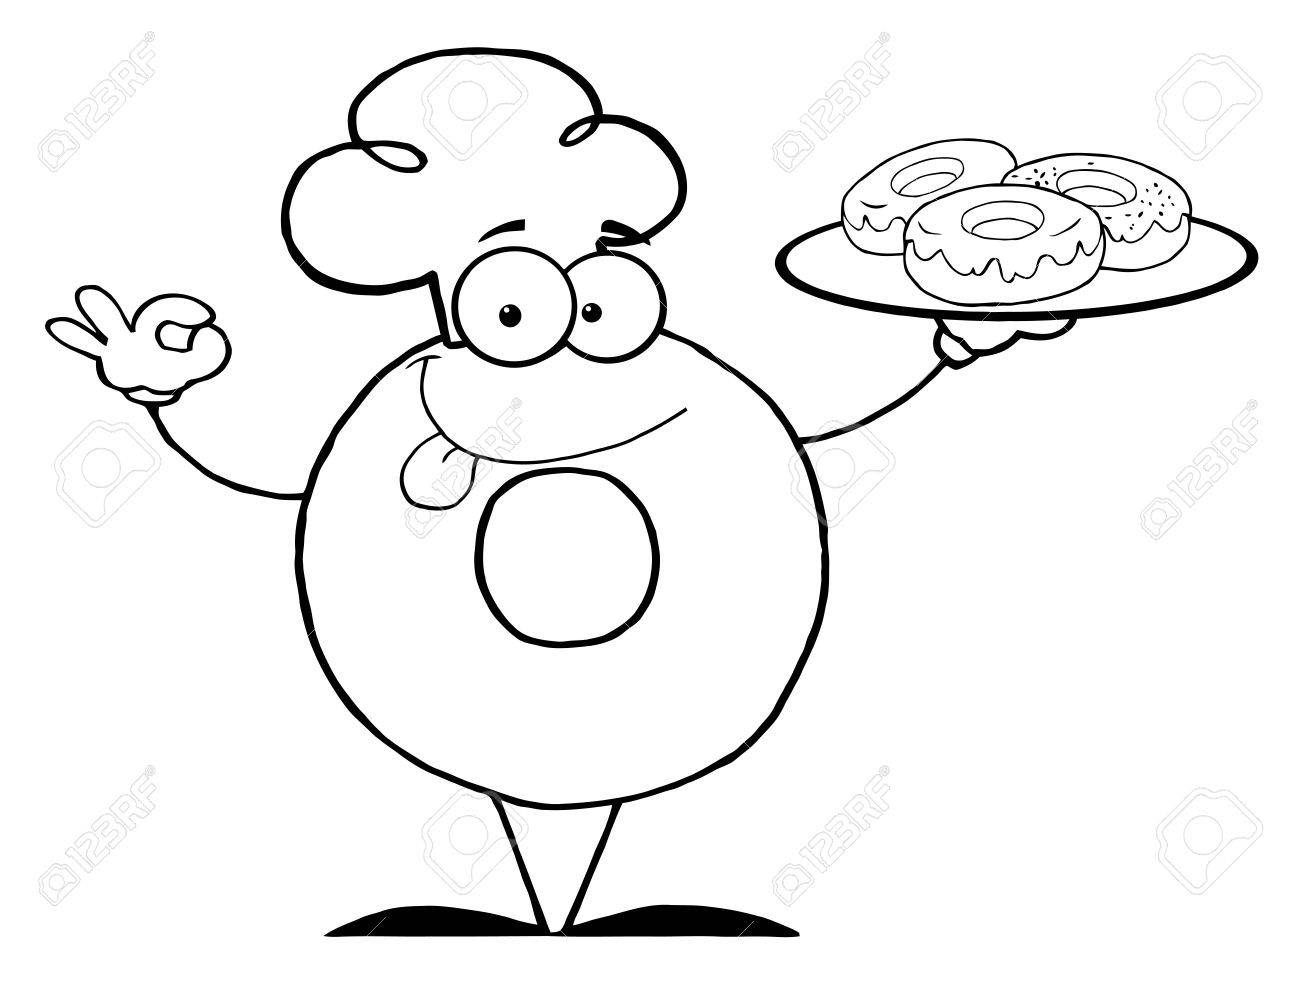 Outlined Friendly Donut Chef Cartoon Character Holding A Donuts